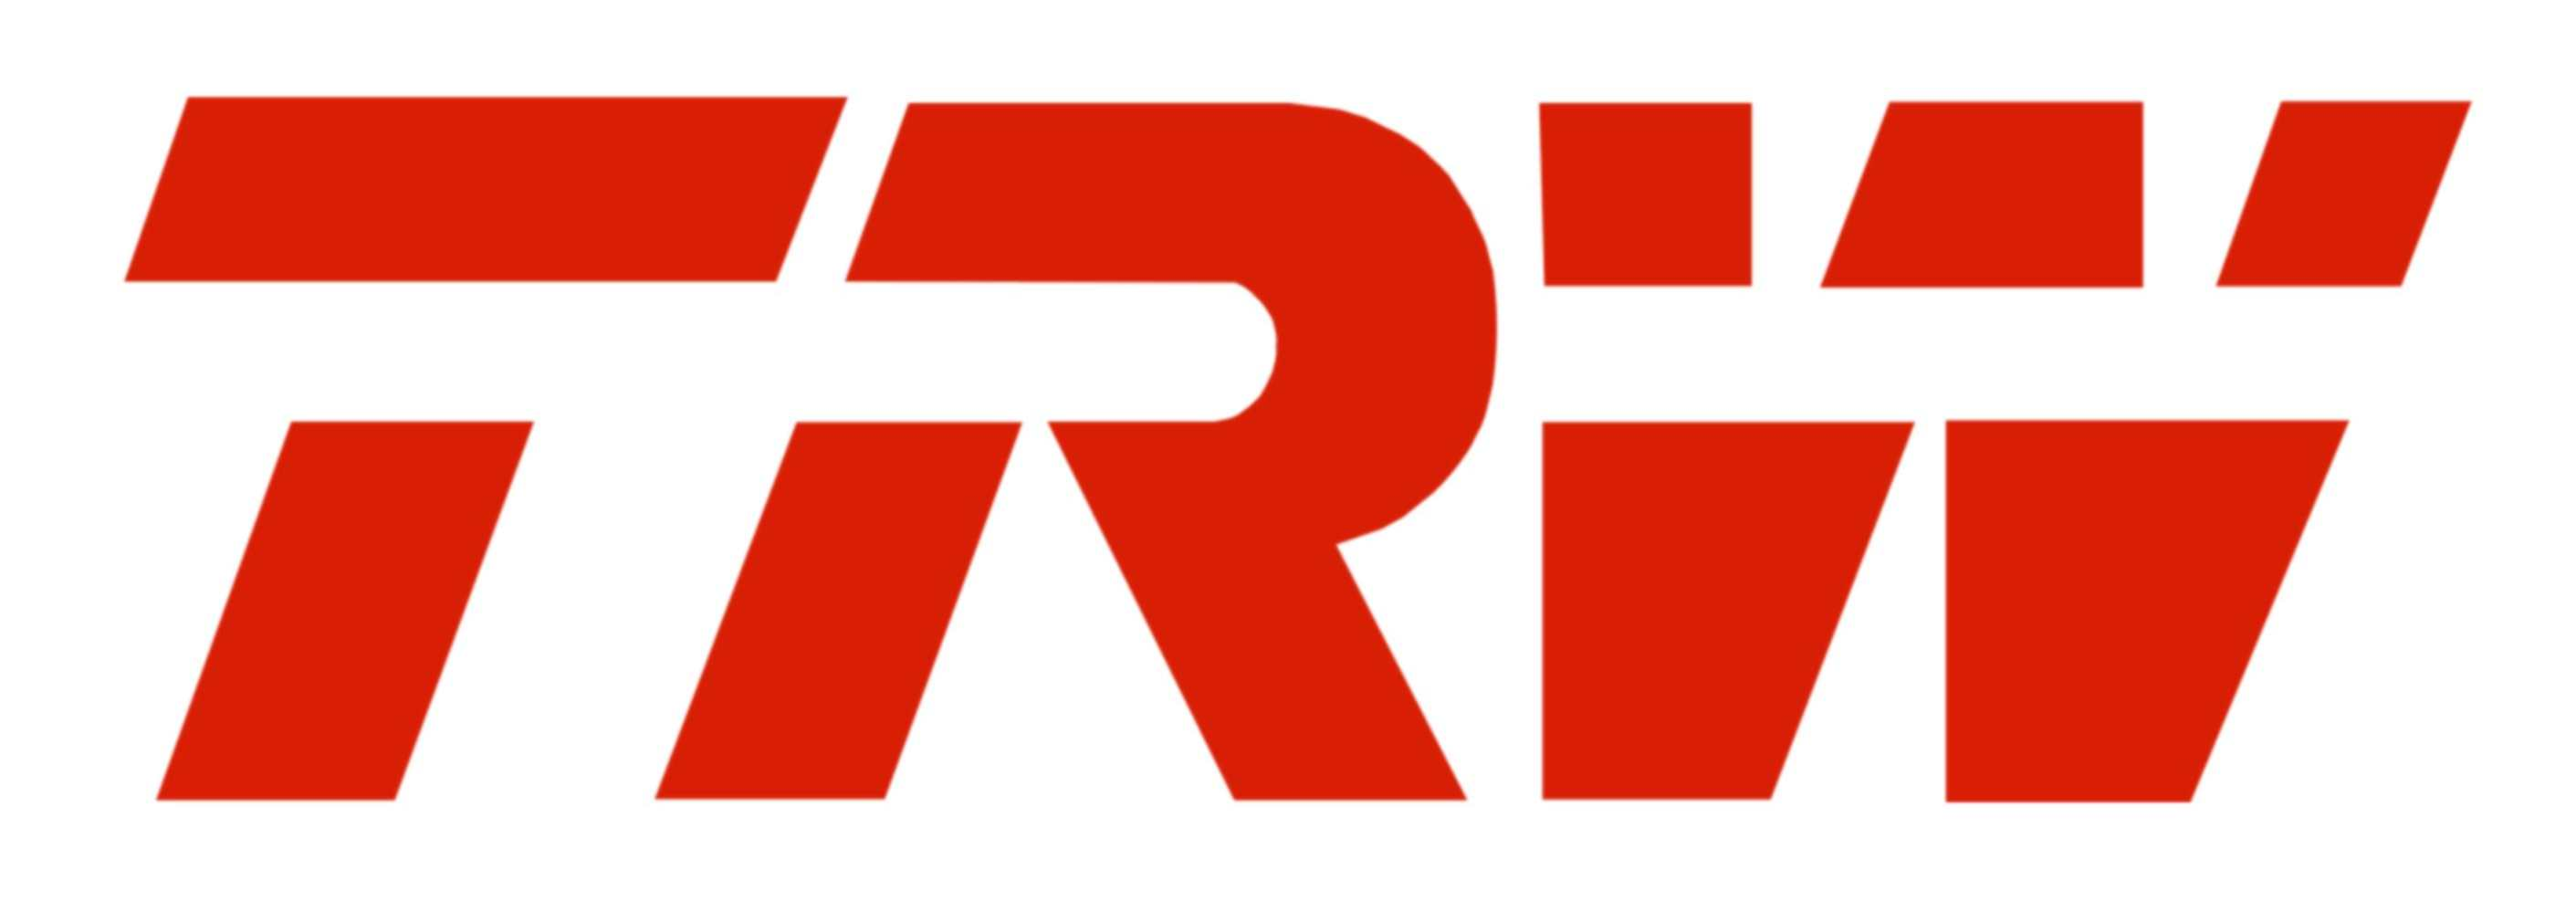 """TRW Highlights Complete NRS Integration in TRW Lucas Motorcycle Brake Pad Product Lines. Cites """"indispensable added safety for all motorbike riders!"""""""